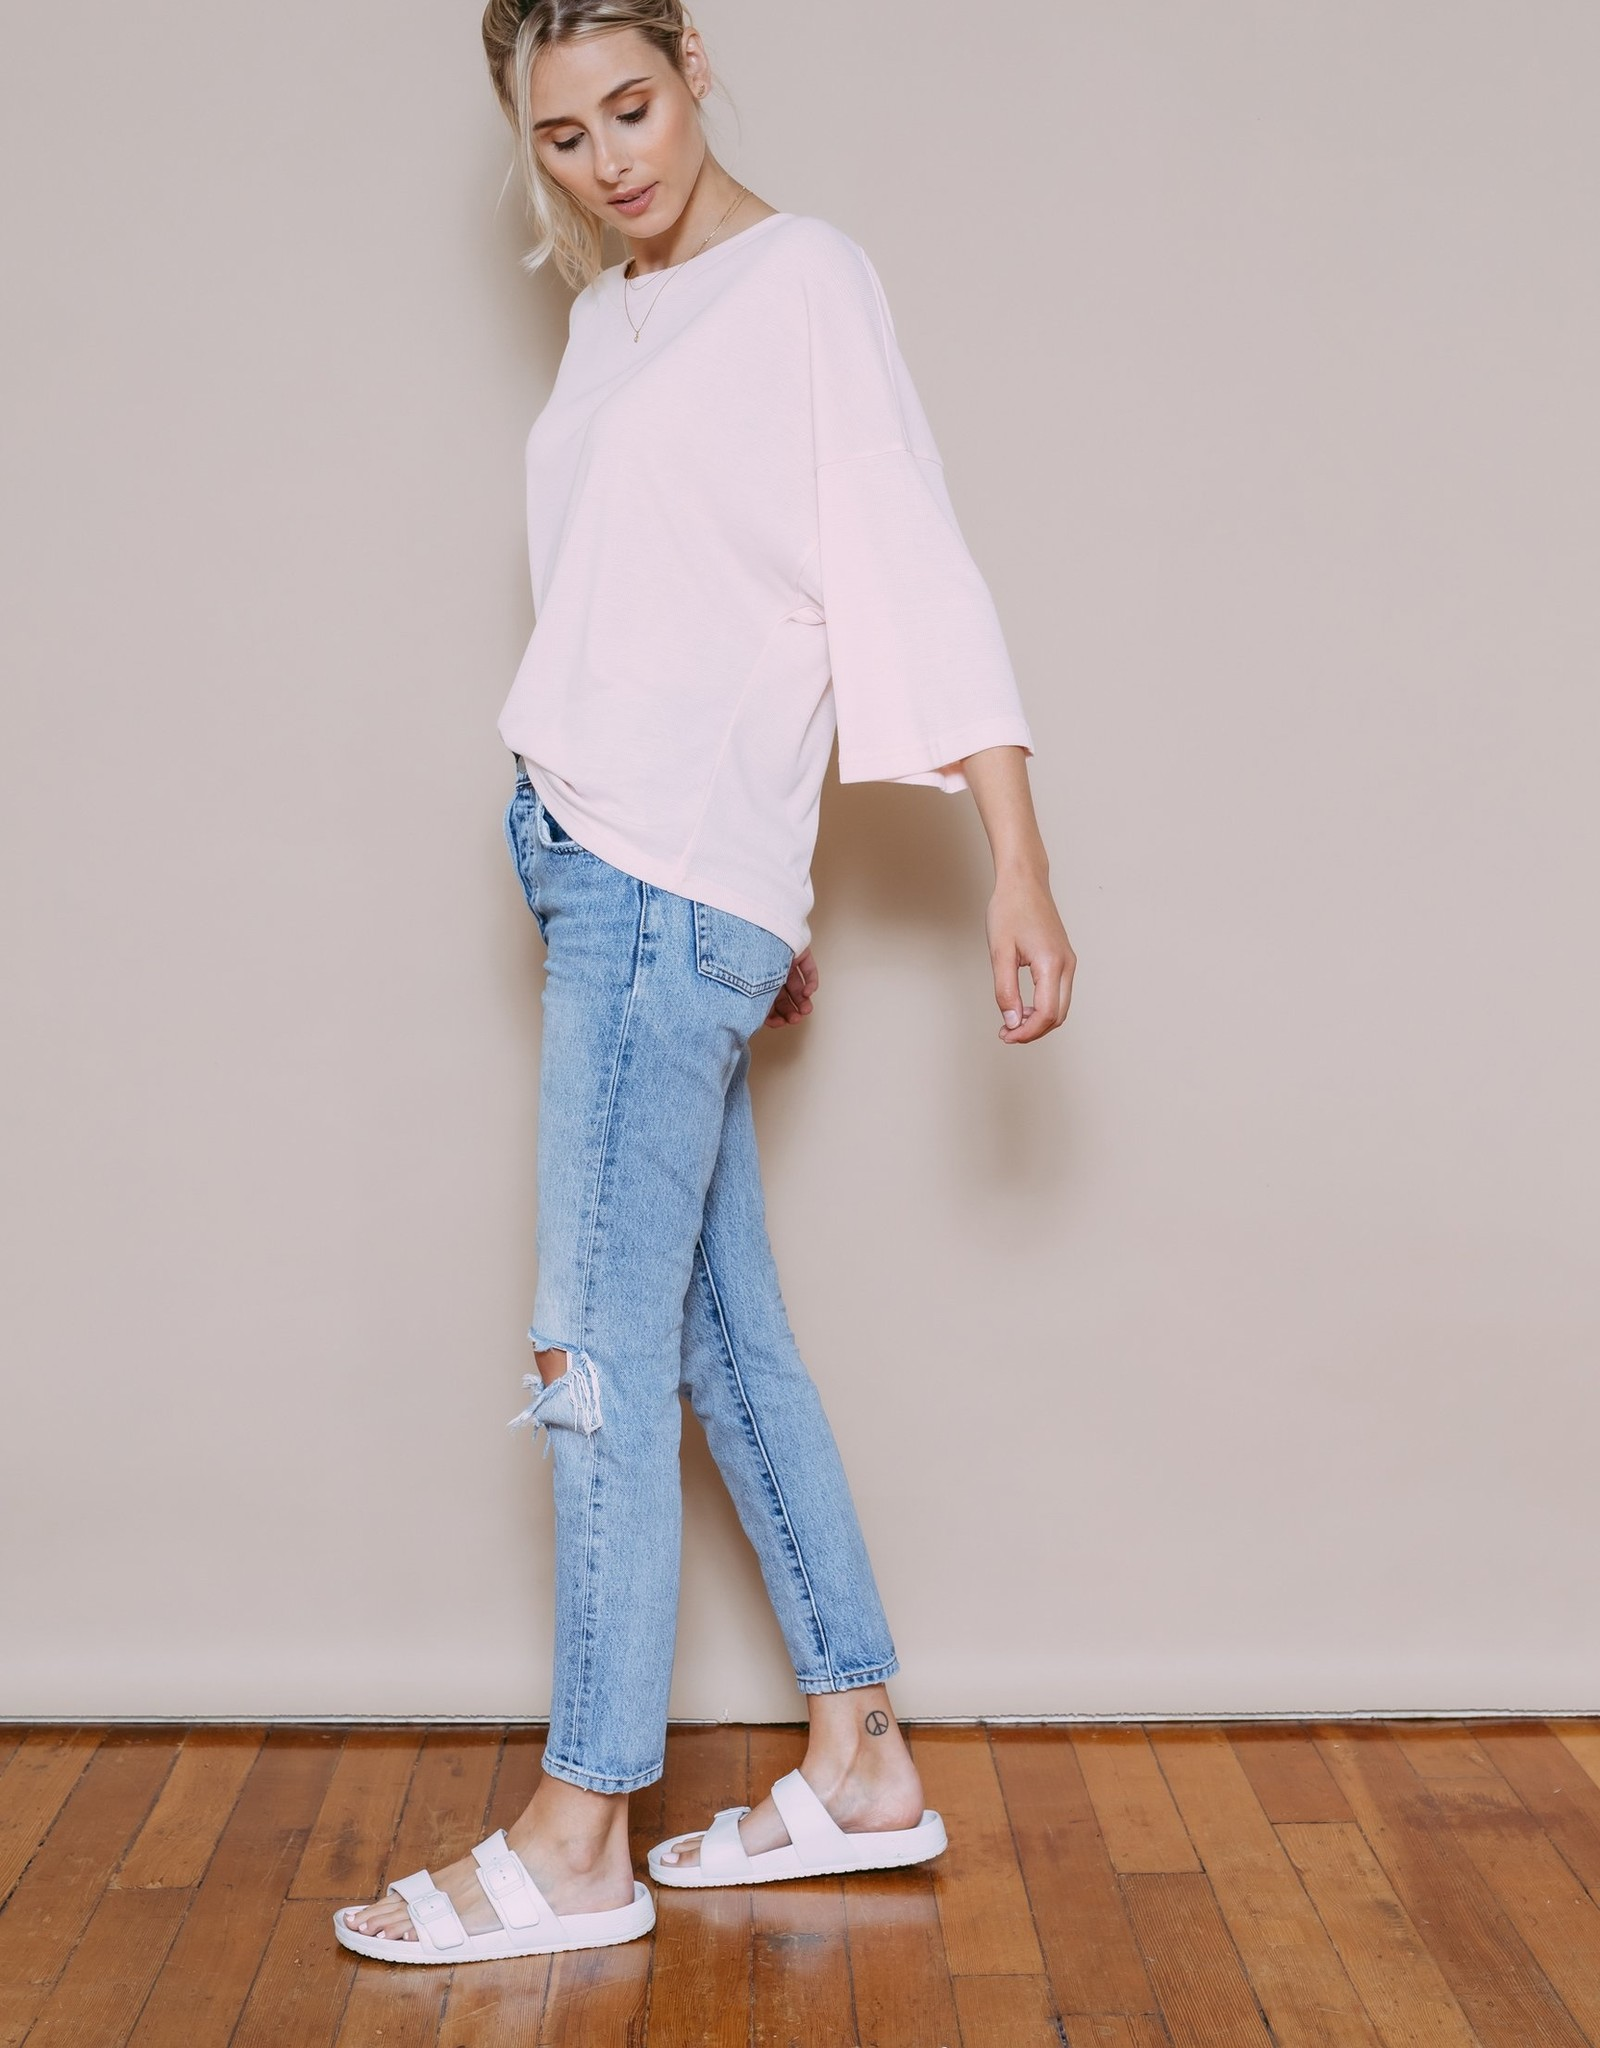 Orb Clothing Elena Lounge Tee